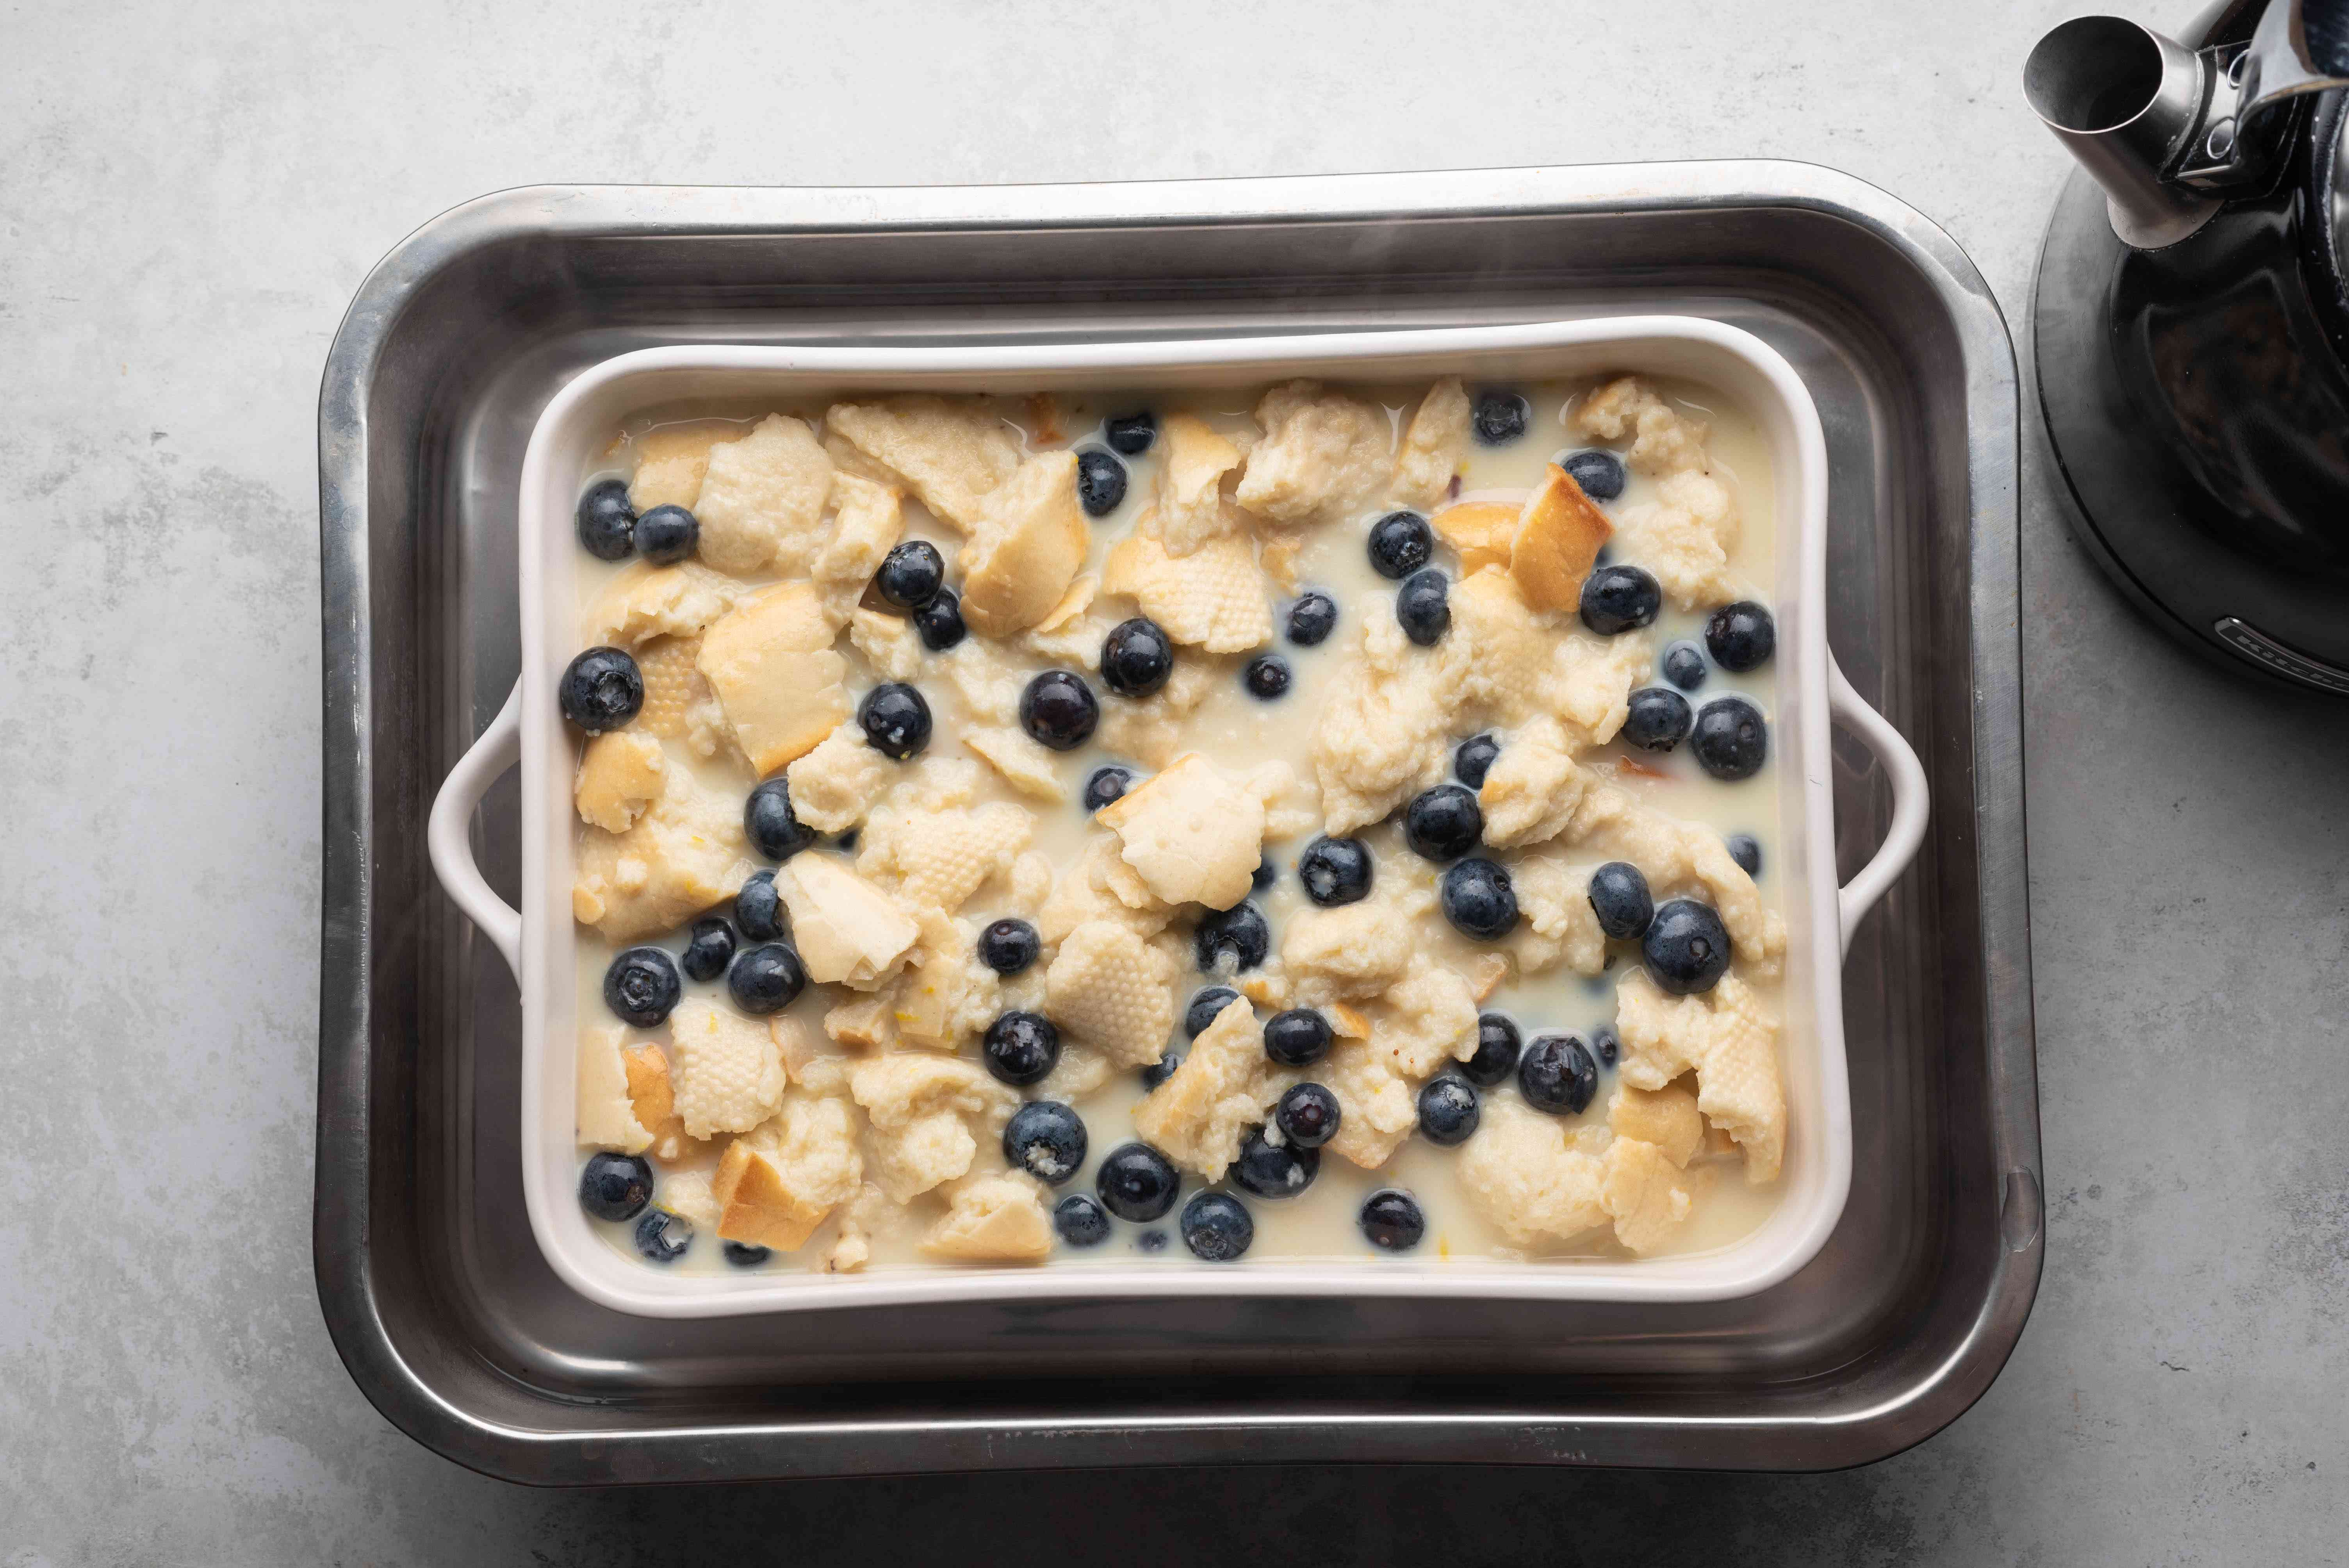 bread pudding in a baking dish in a water bath